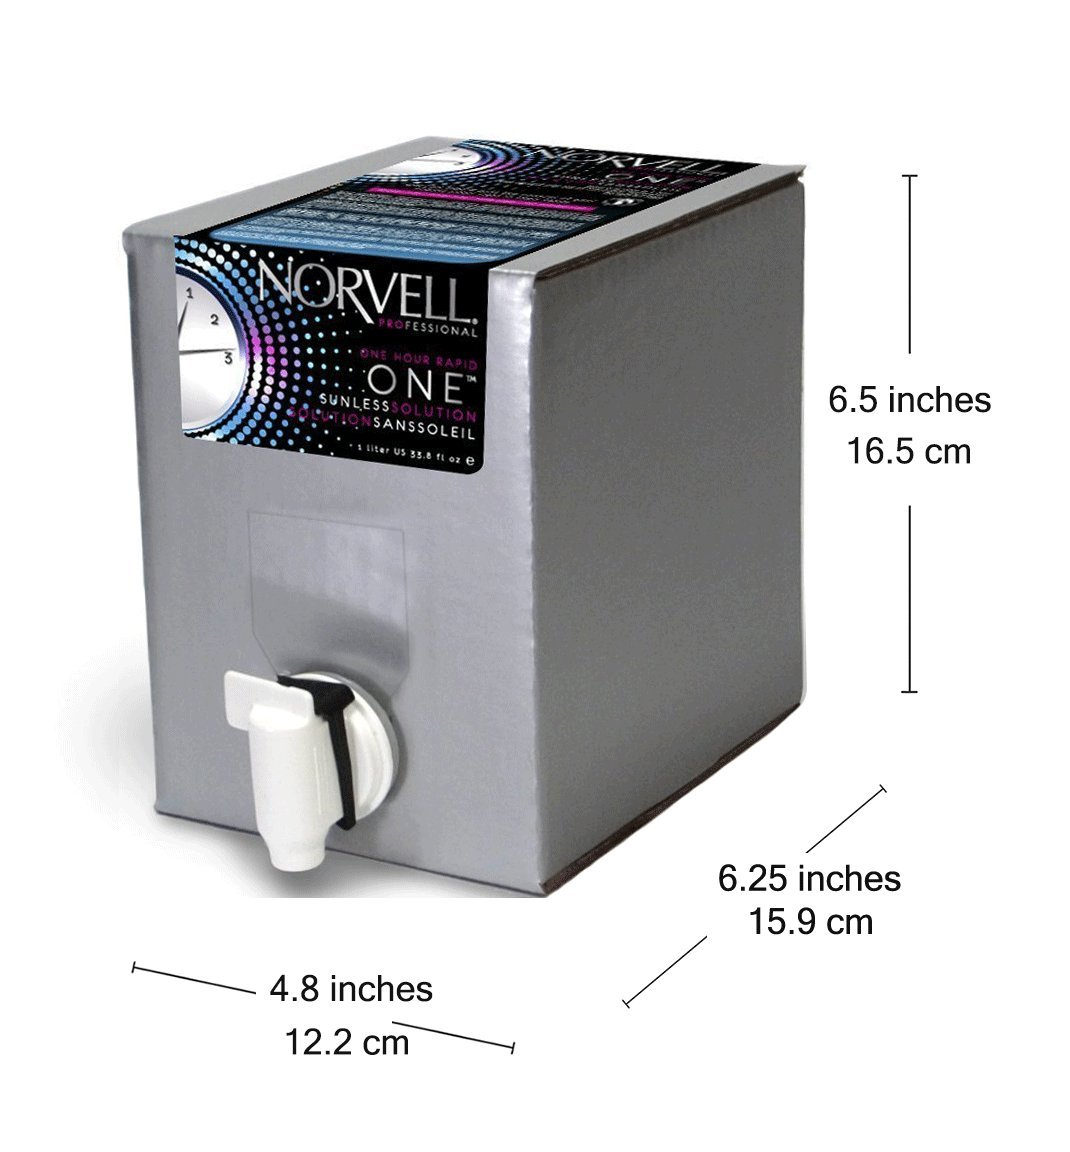 Norvell Premium Sunless Tanning Solution - One Hour Rapid, 1 Liter Box by Norvell (Image #6)